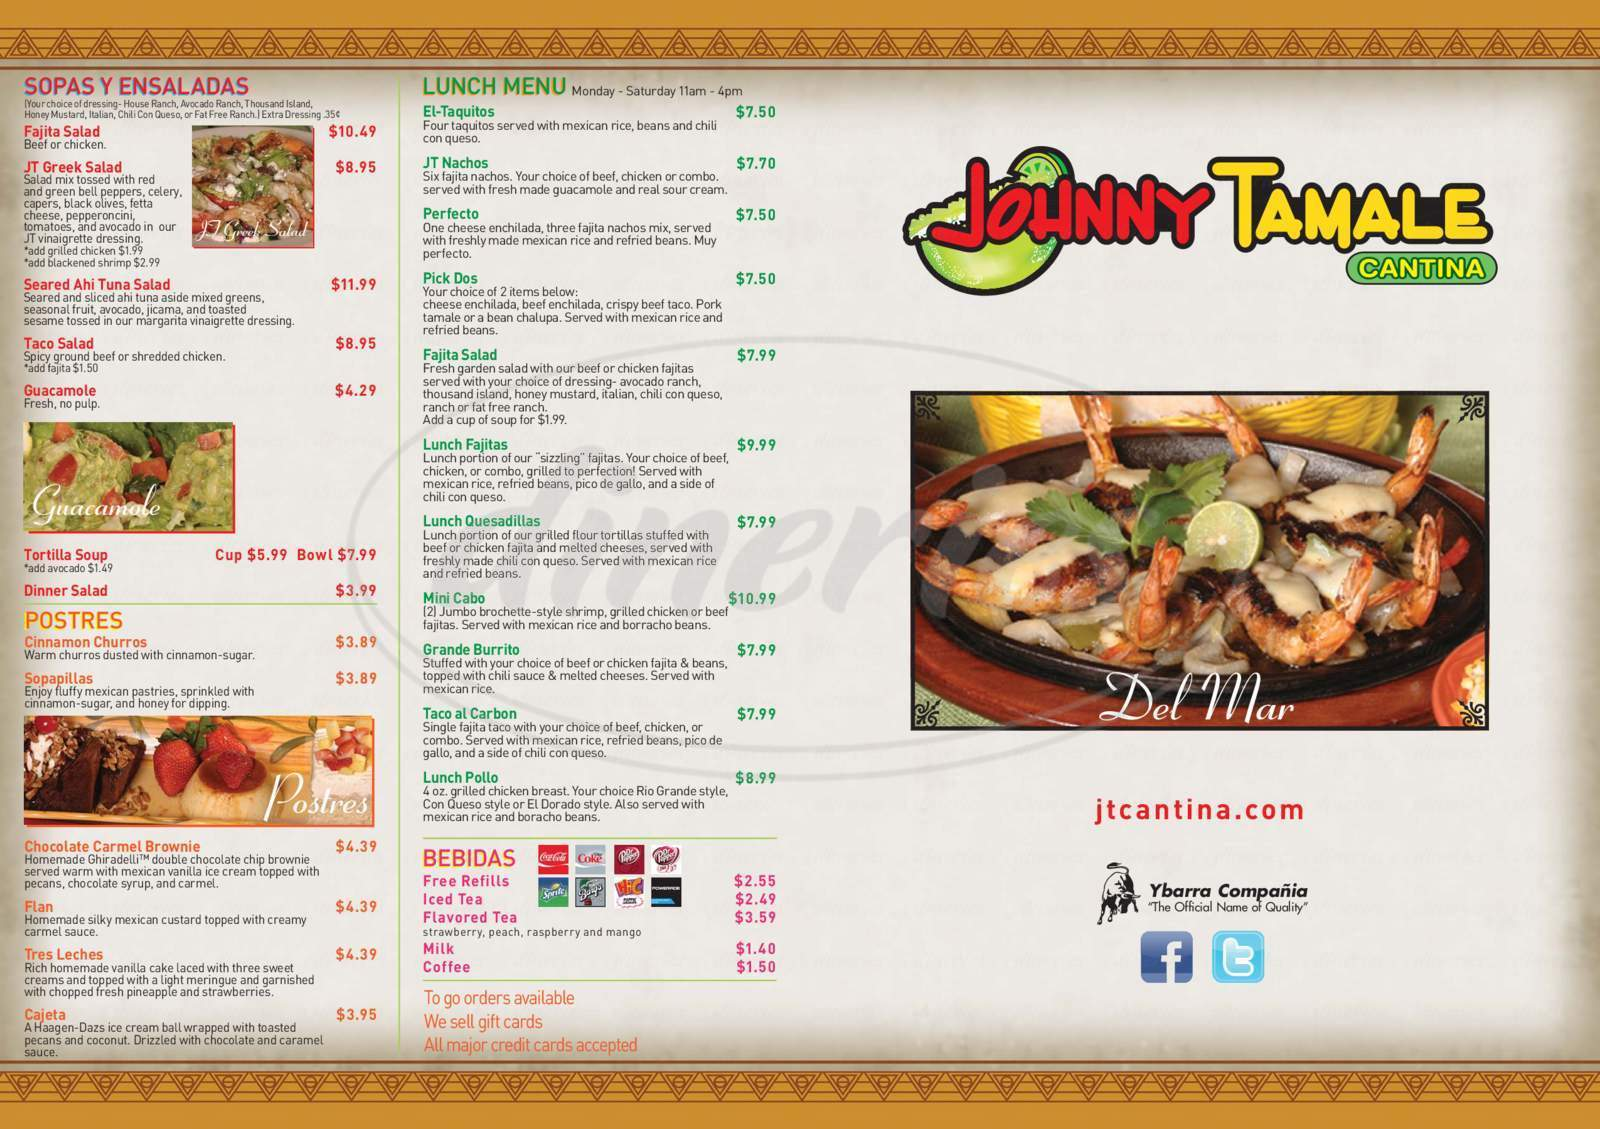 menu for Johnny Tamale Cantina